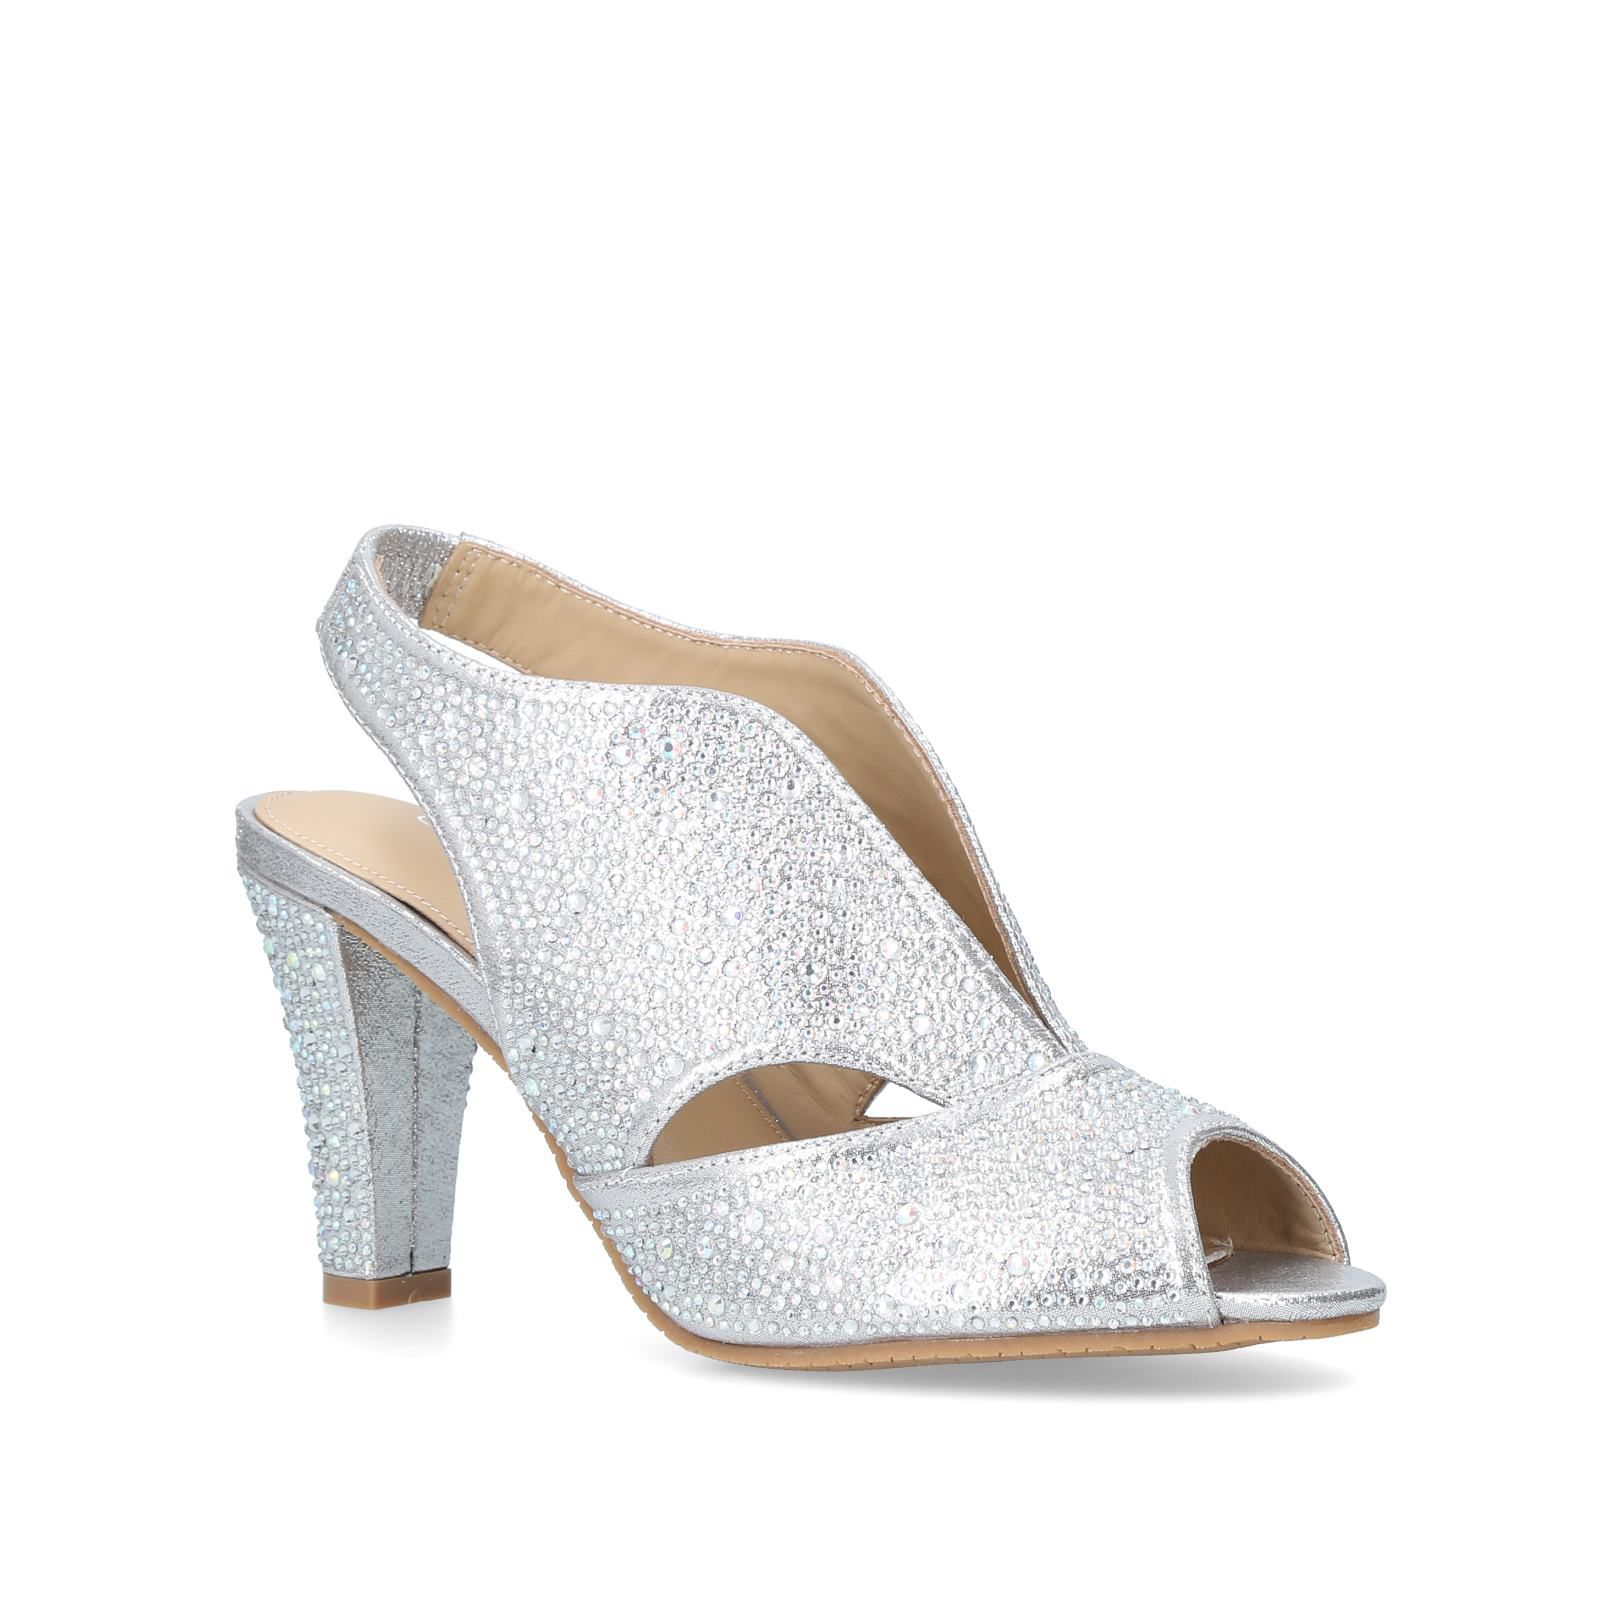 Carvela Comfort Arabella Courts, Gold Silverlic